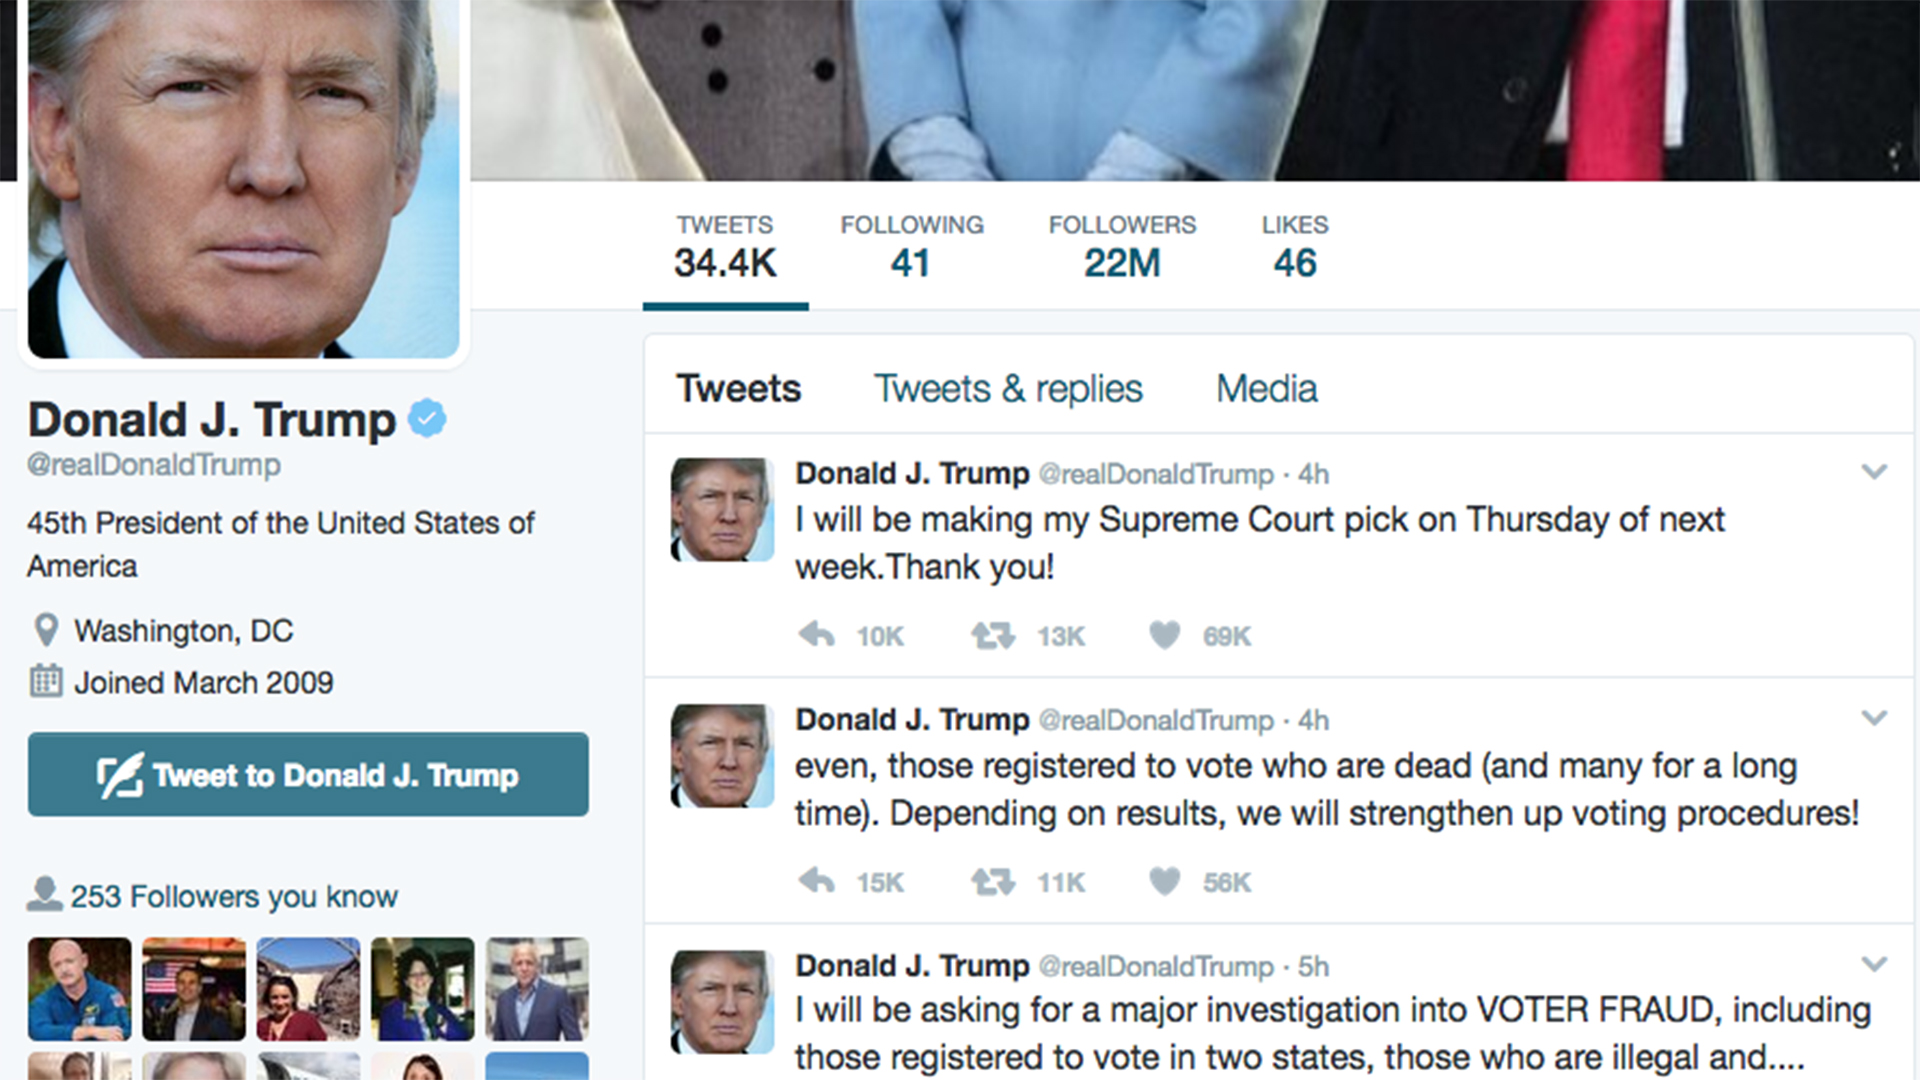 President Donald Trump sent out tweets about investigating voter fraud during the November 2016 election. January 25, 2017